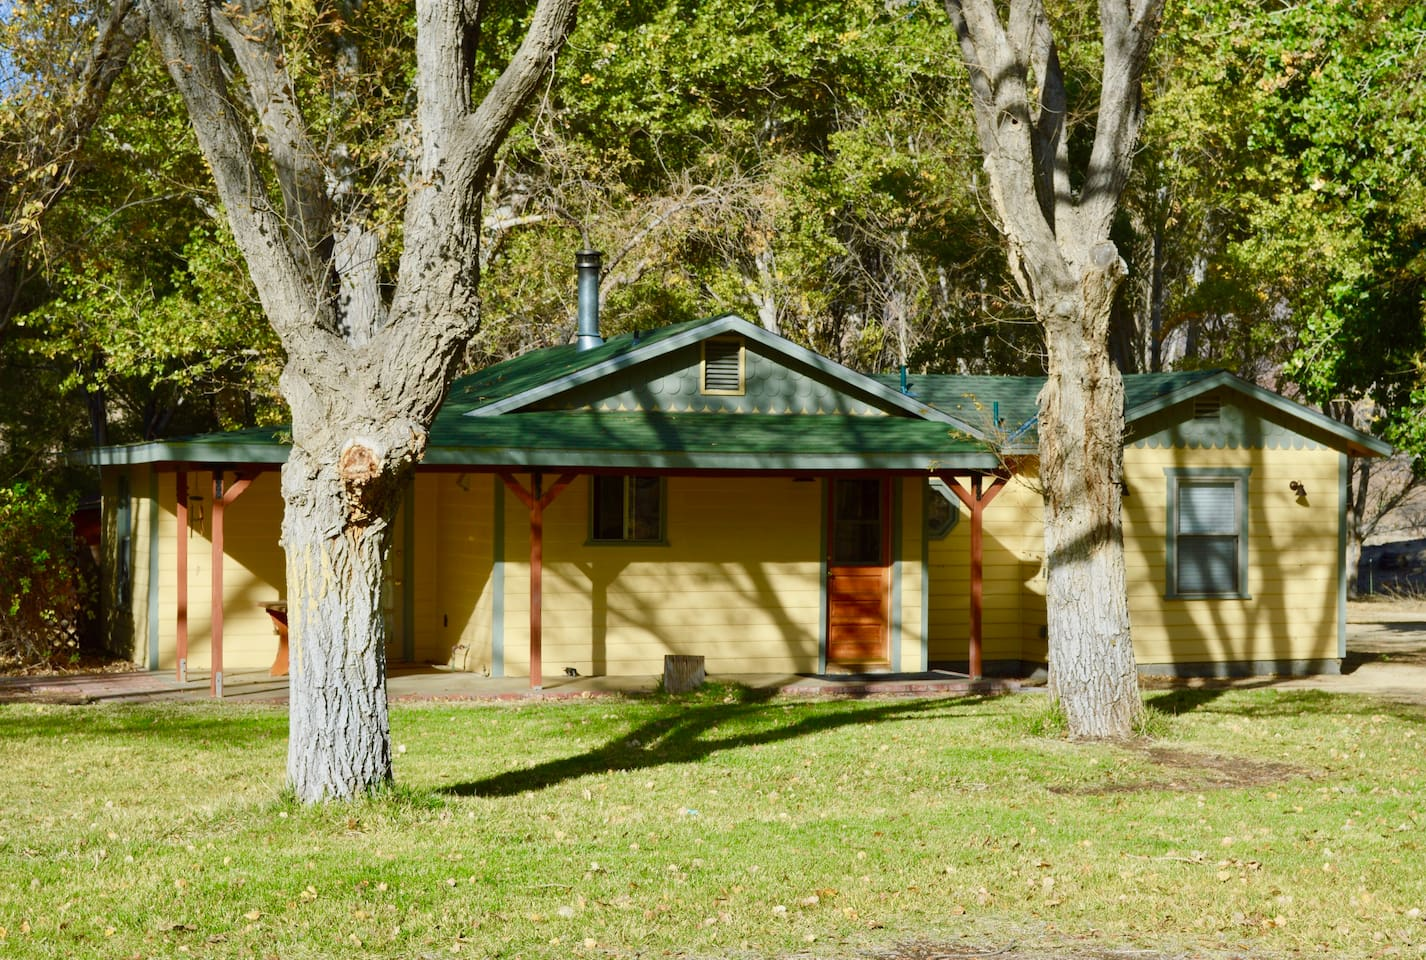 2 Bedroom, 1 Bath Cabin with Full Kitchen, Sitting Area, 2 Patios, and Grill